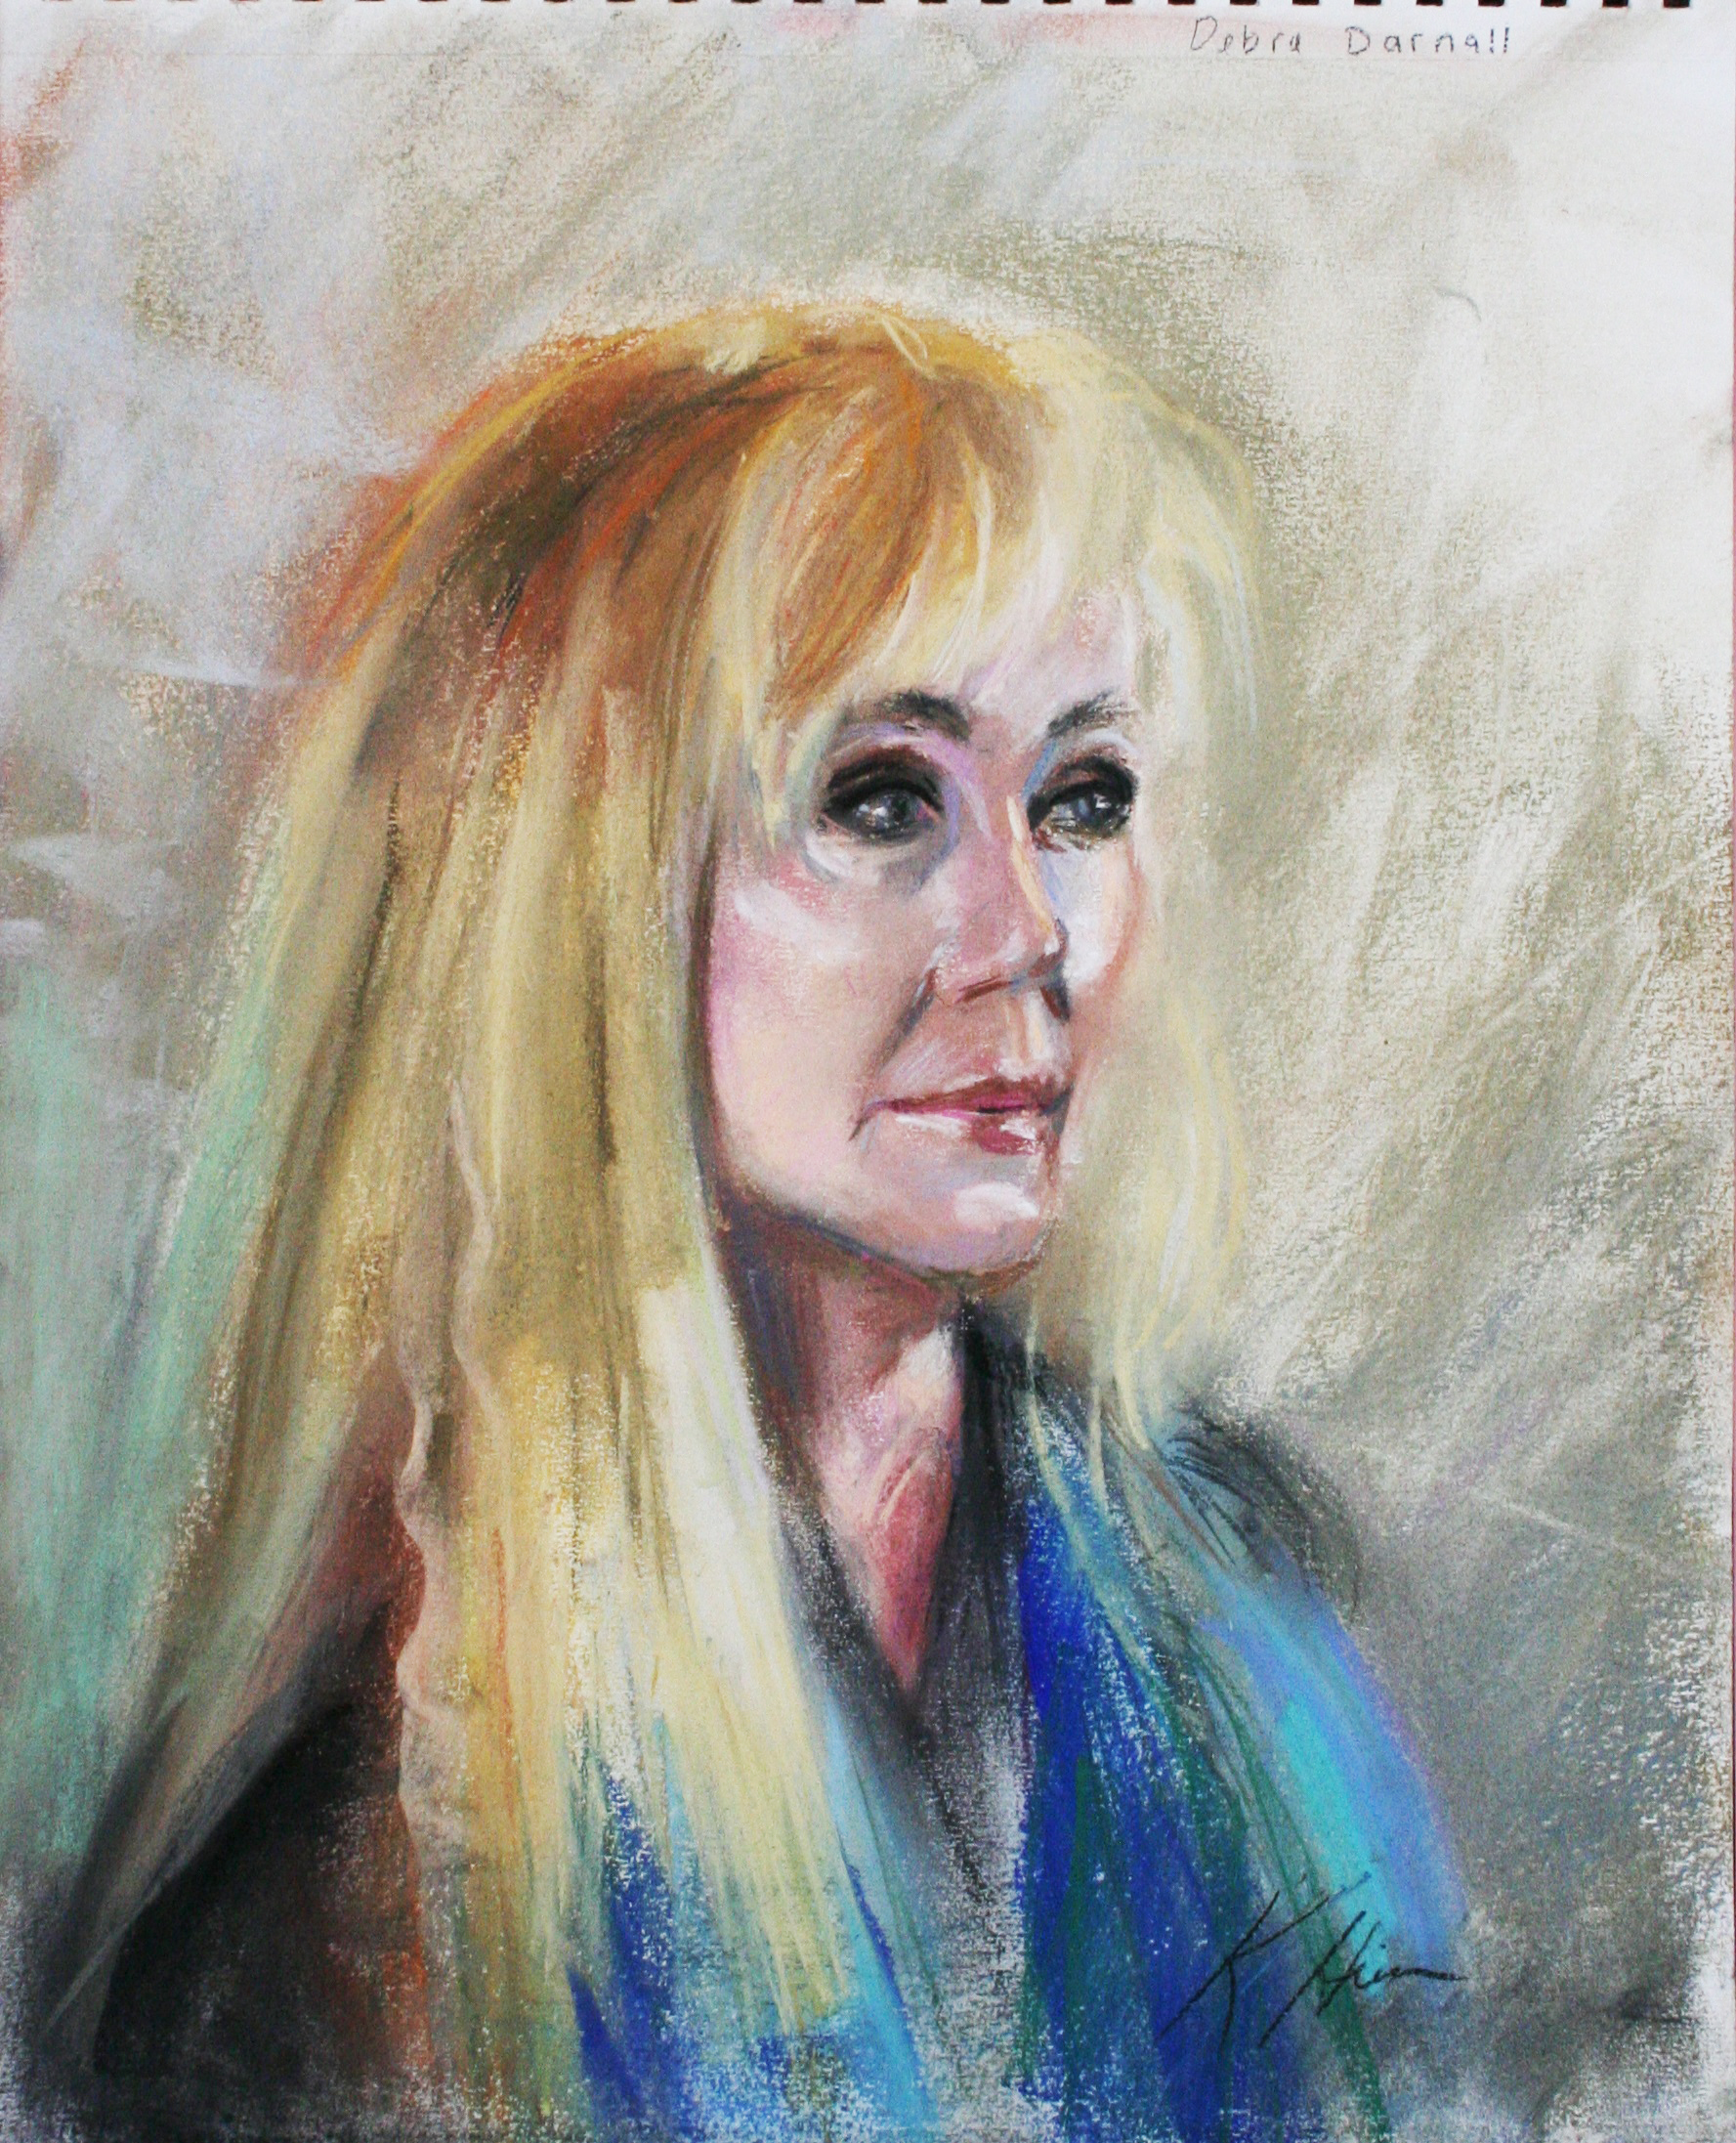 Kathryn Heim did this 3-hour pastel drawing.